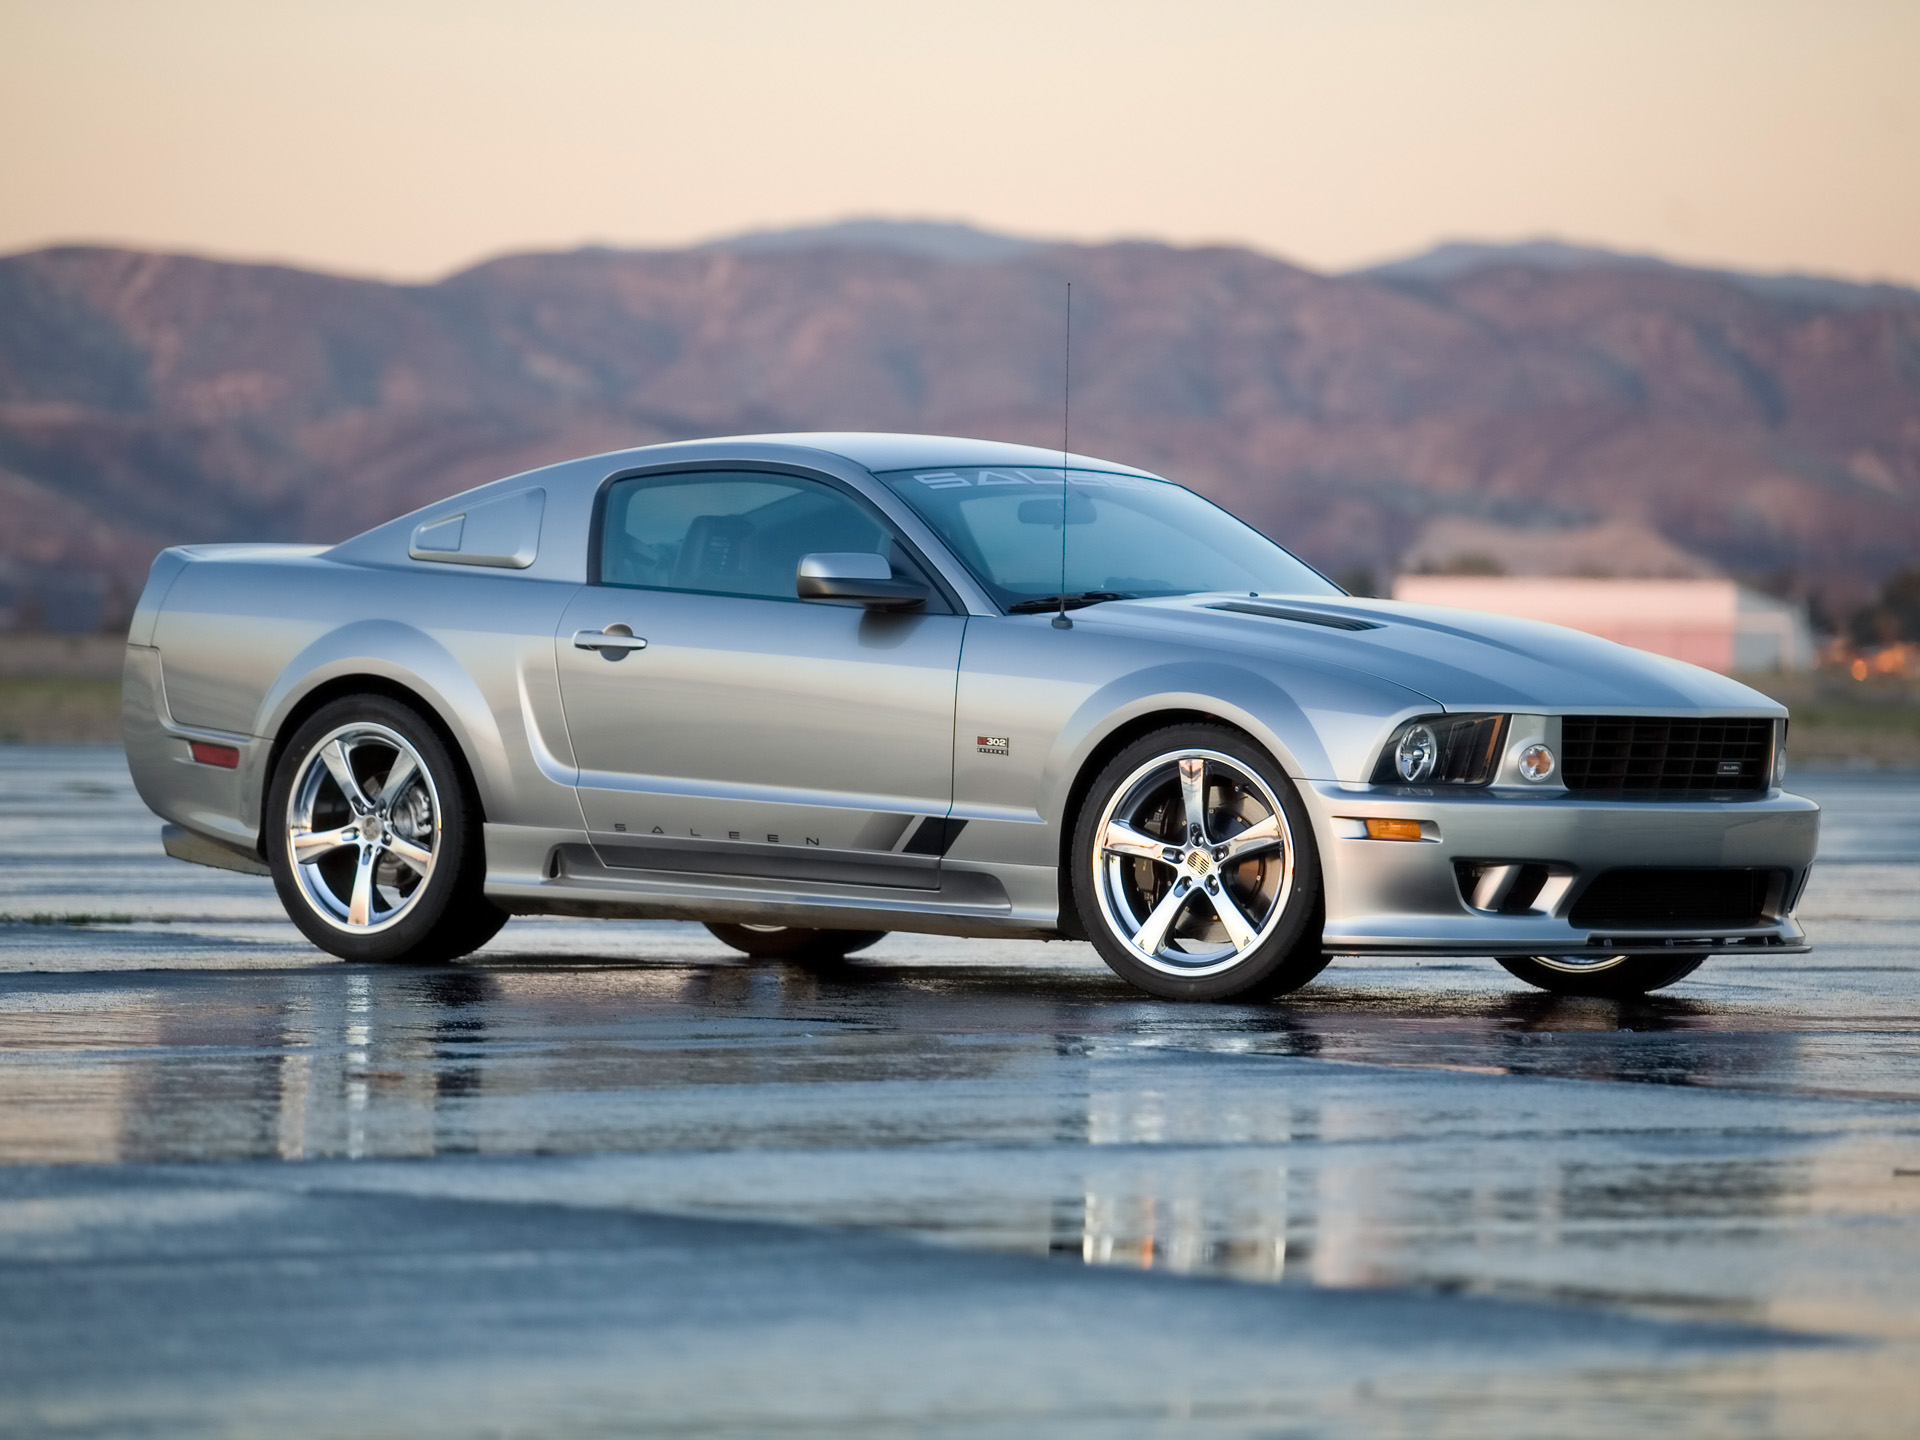 saleen mustang s302 extreme picture 49641 saleen photo. Black Bedroom Furniture Sets. Home Design Ideas